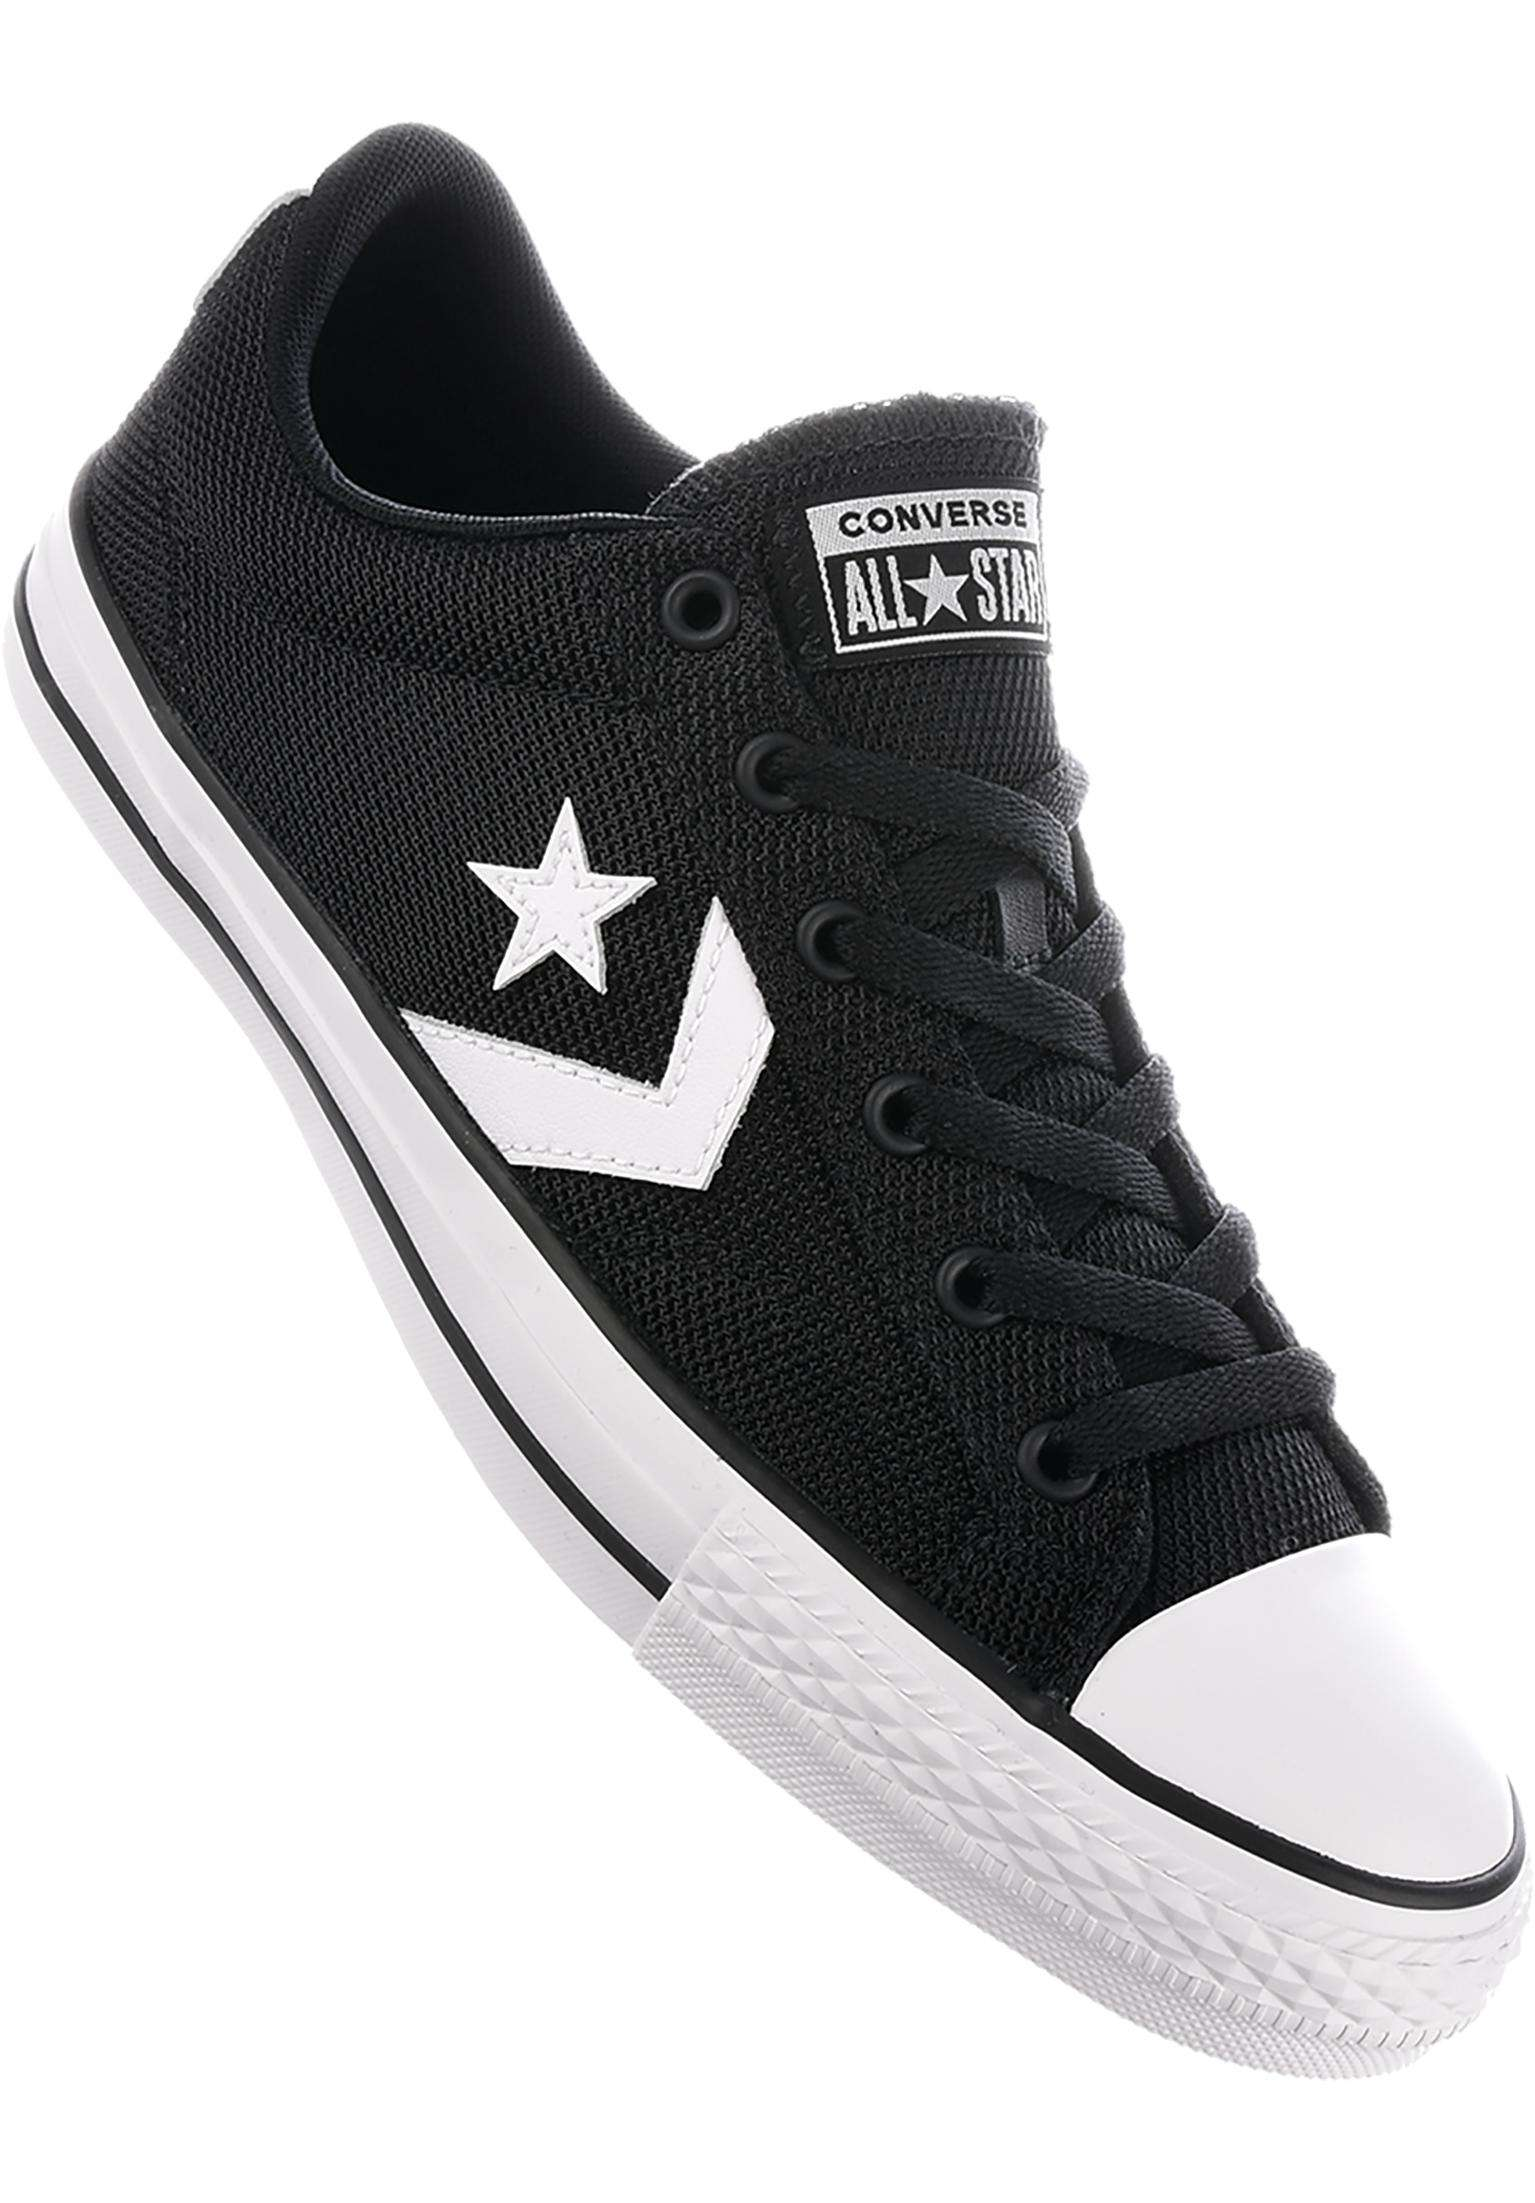 c8db85417962 ... sale star player ox converse cons all shoes in black white black for  men titus 45f2a